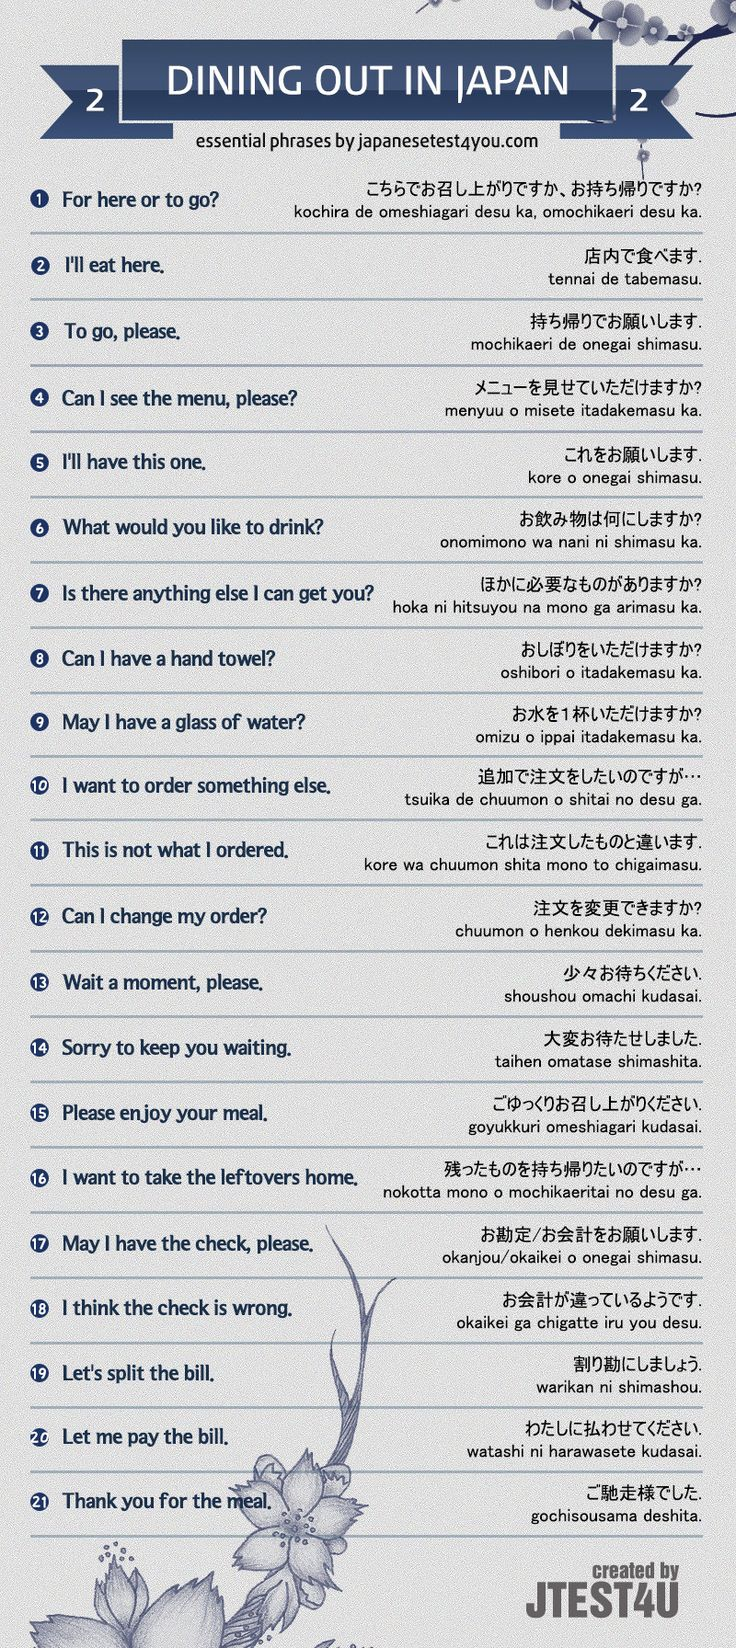 Essential Japanese phrases for dining out part 2. http://japanesetest4you.com/infographic-essential-japanese-phrases-for-dining-out-part-2/